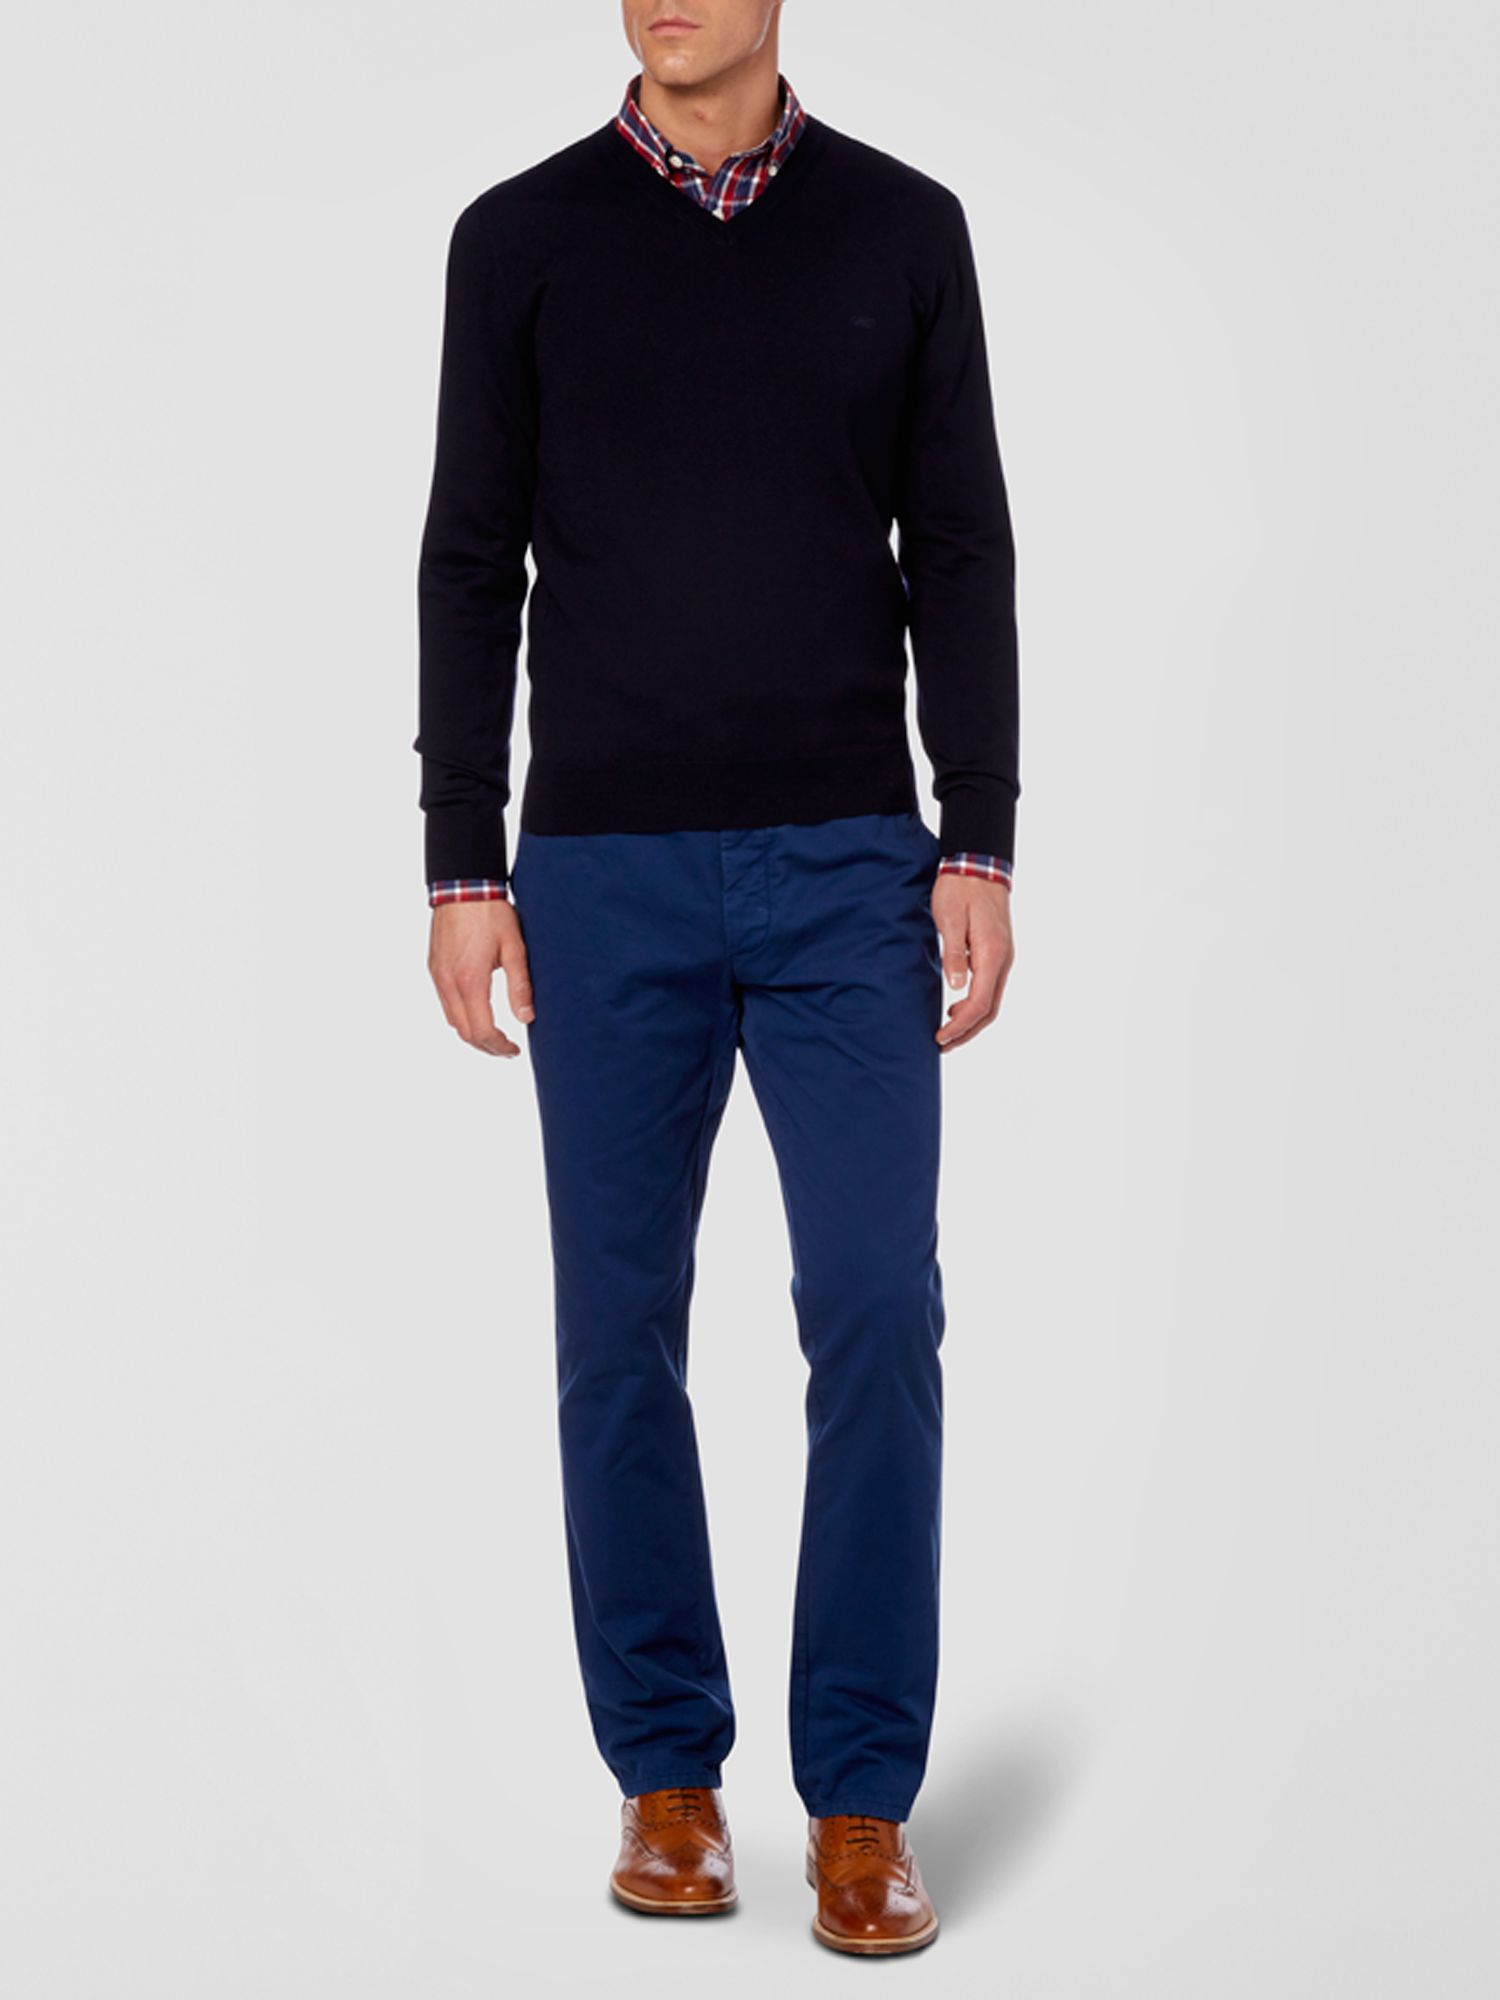 Twill casual chino trousers